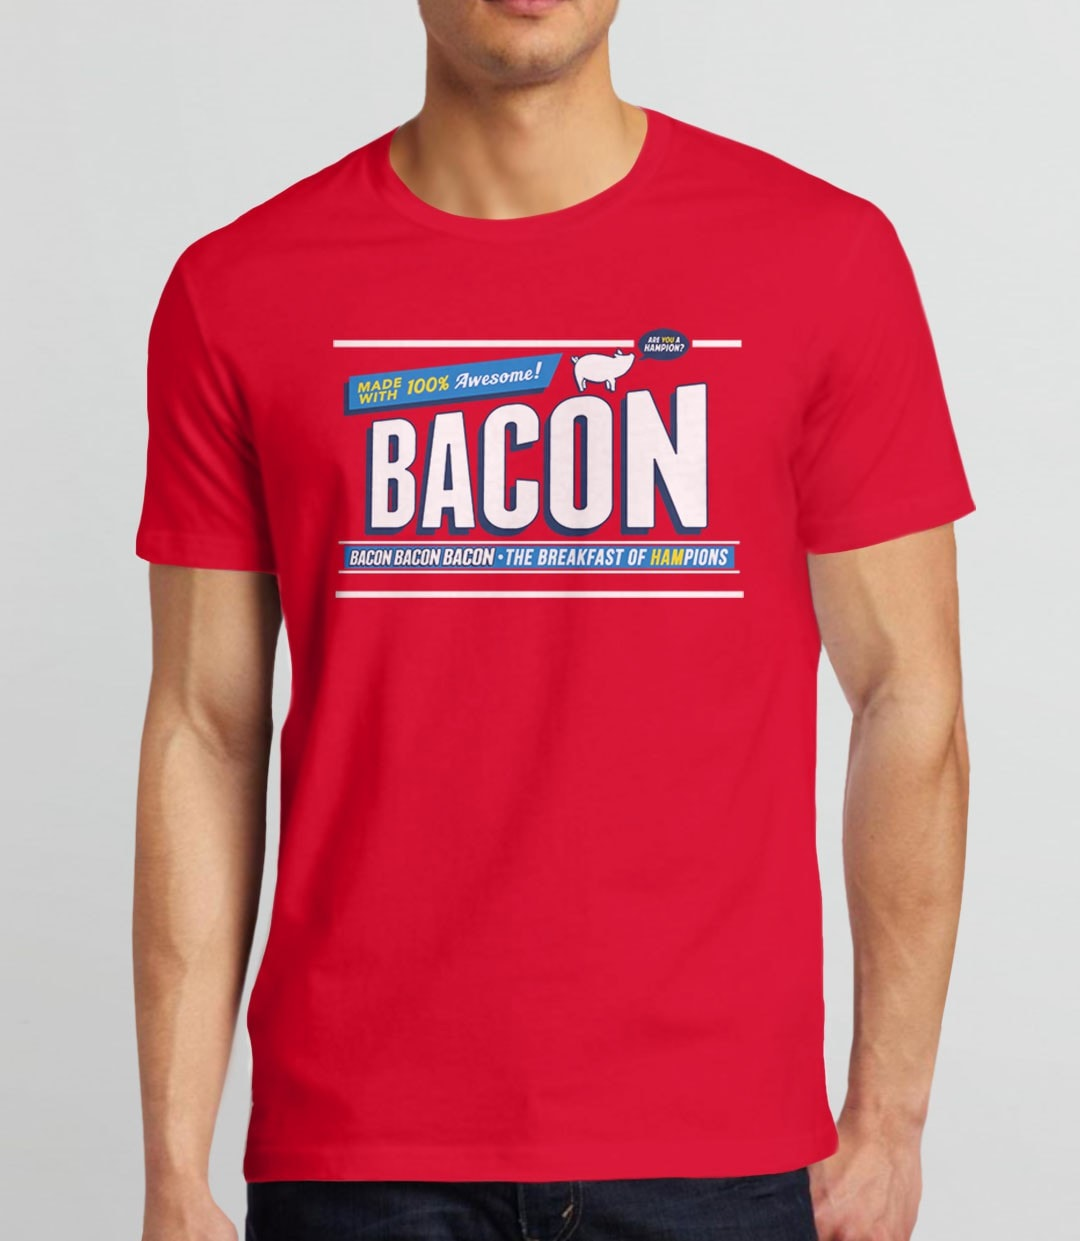 Breakfast of Hampions | funny gift for bacon lover t-shirt - mens